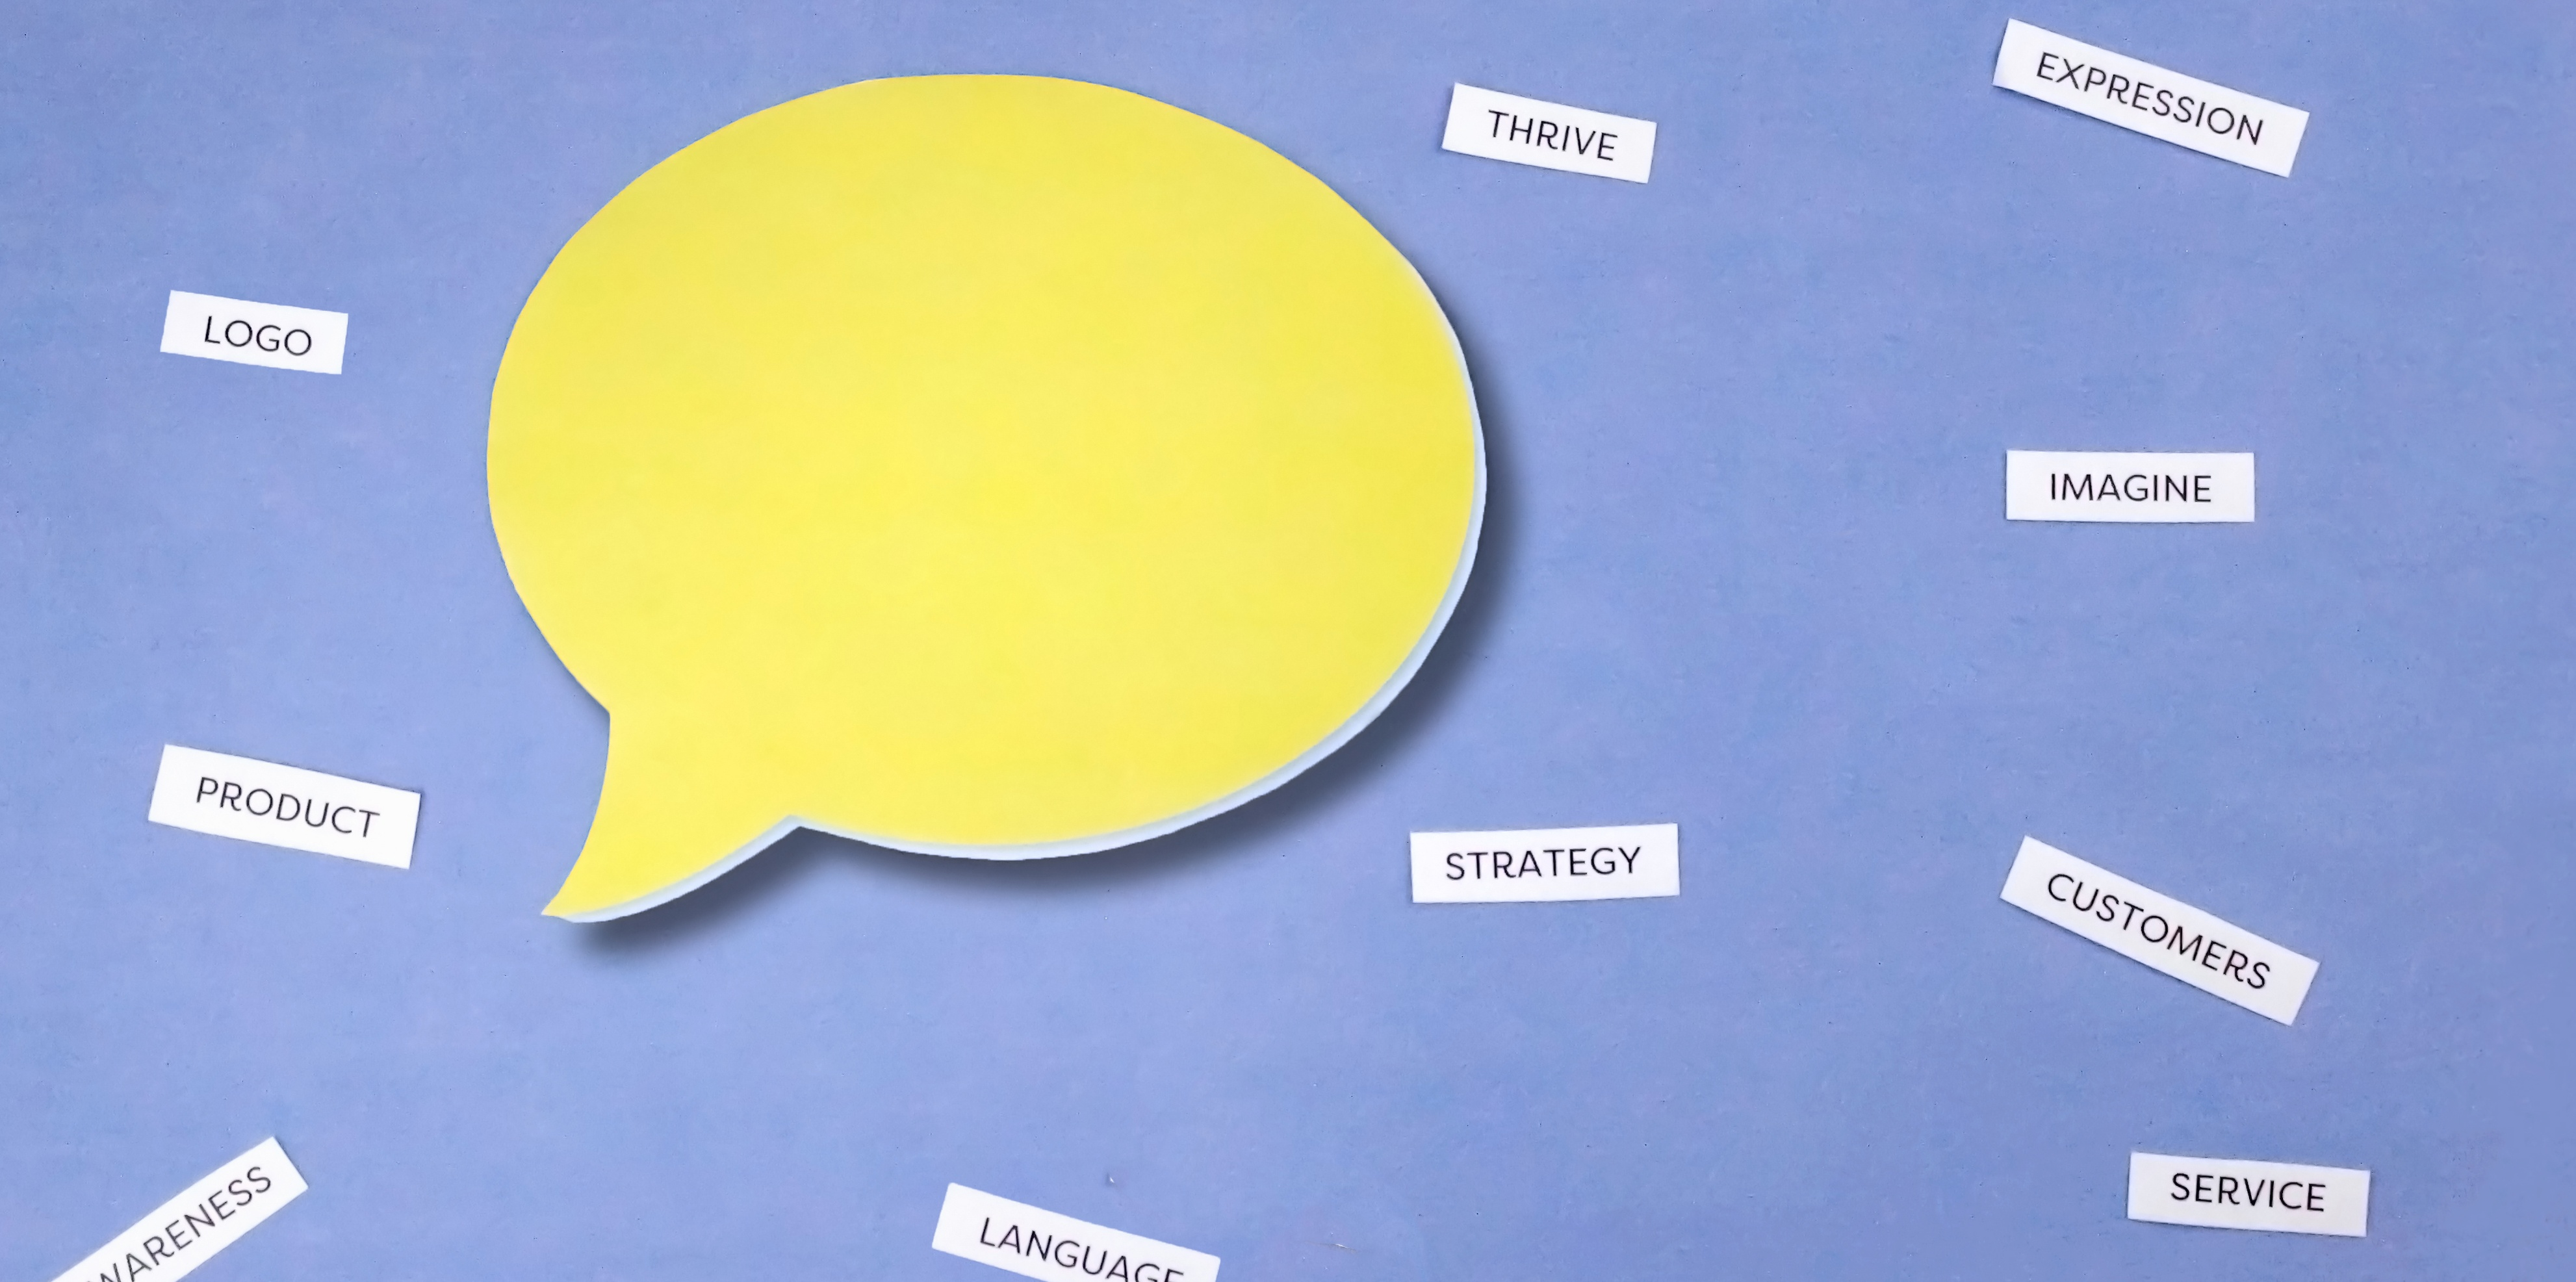 How to Determine Your Brand Voice